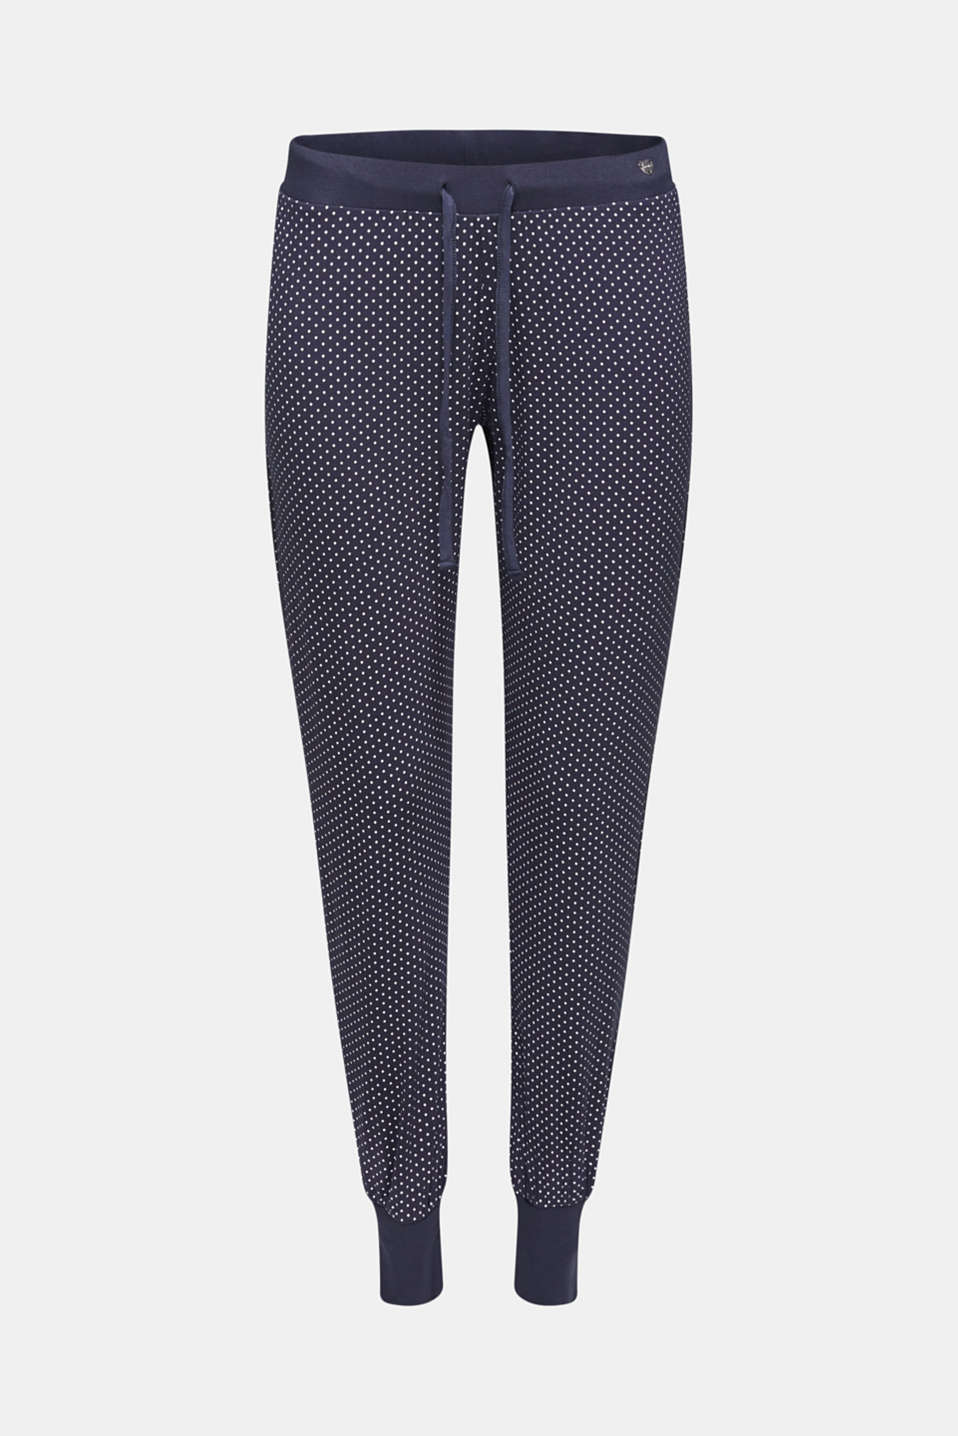 NAVY mix + match stretch jersey trousers, NAVY, detail image number 6